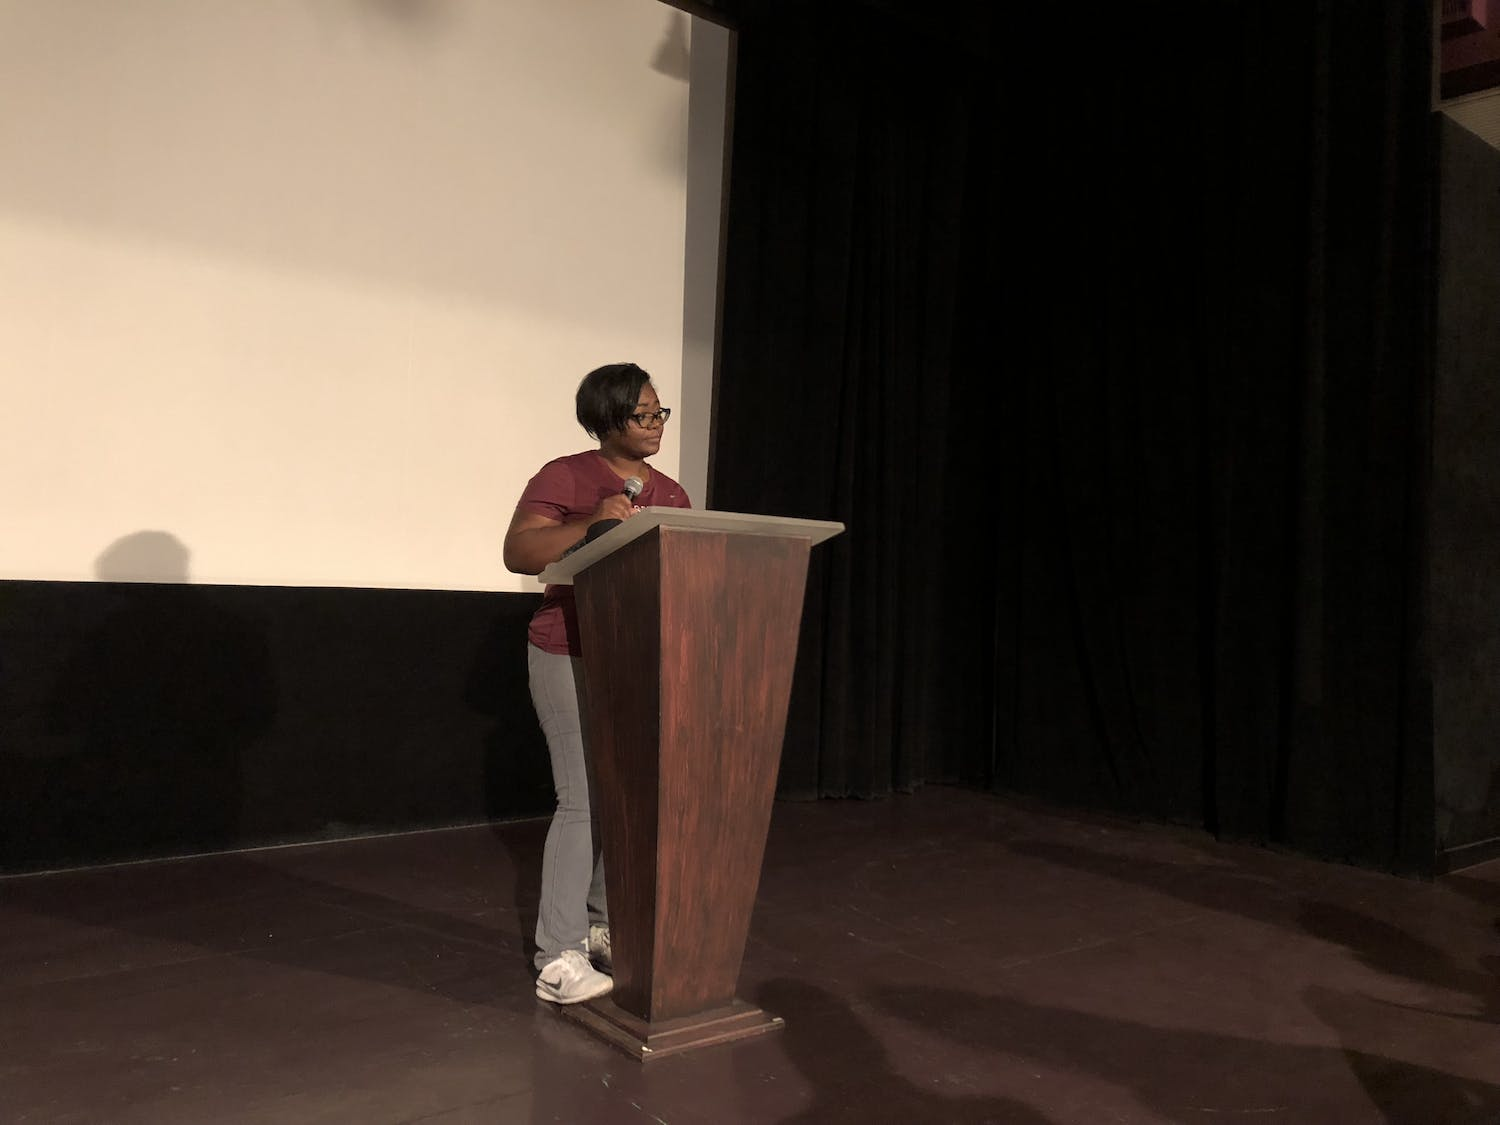 Chanae Jackson-Baker is speaking to a crowd of about 70 people at the Hippodrome Theatre on Monday evening about the inequity in Alachua County schools.